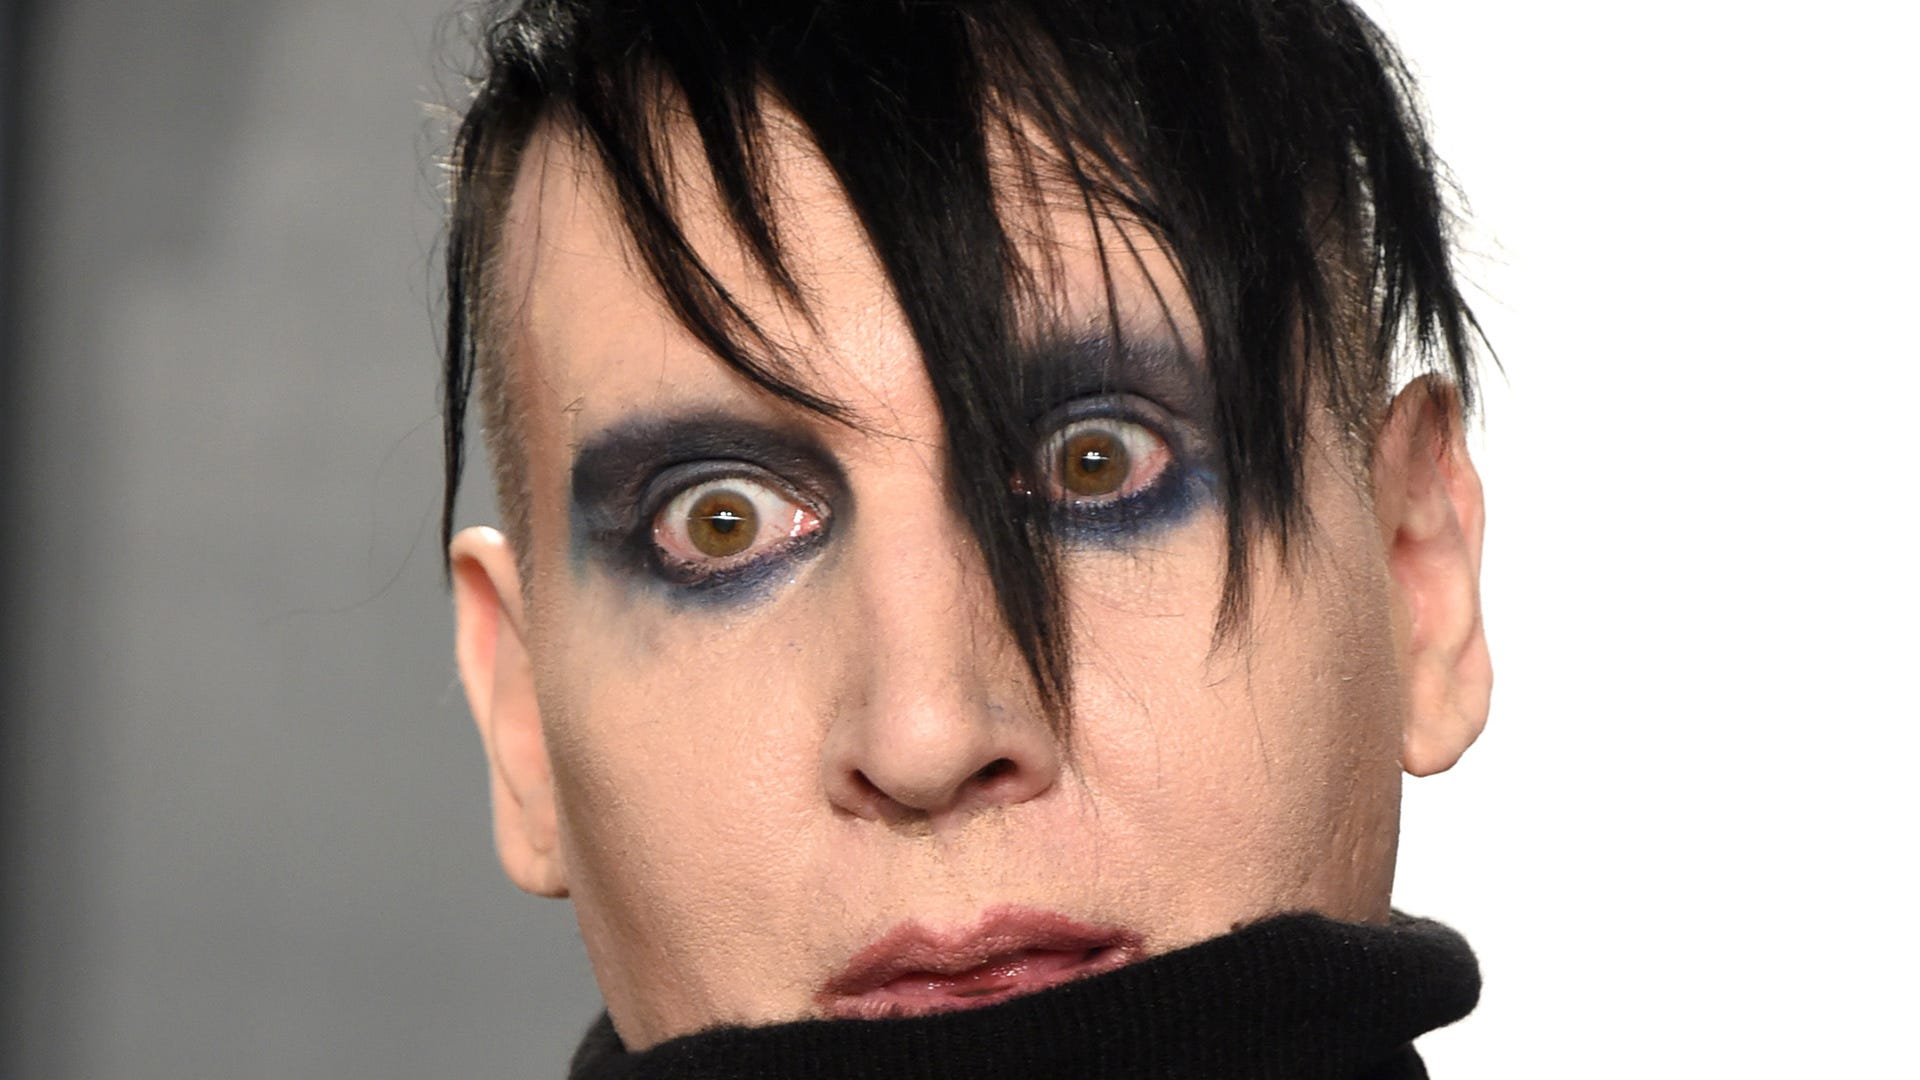 Marilyn Manson sued by 'Game of Thrones' actor Esme Bianco for sexual assault, trafficking